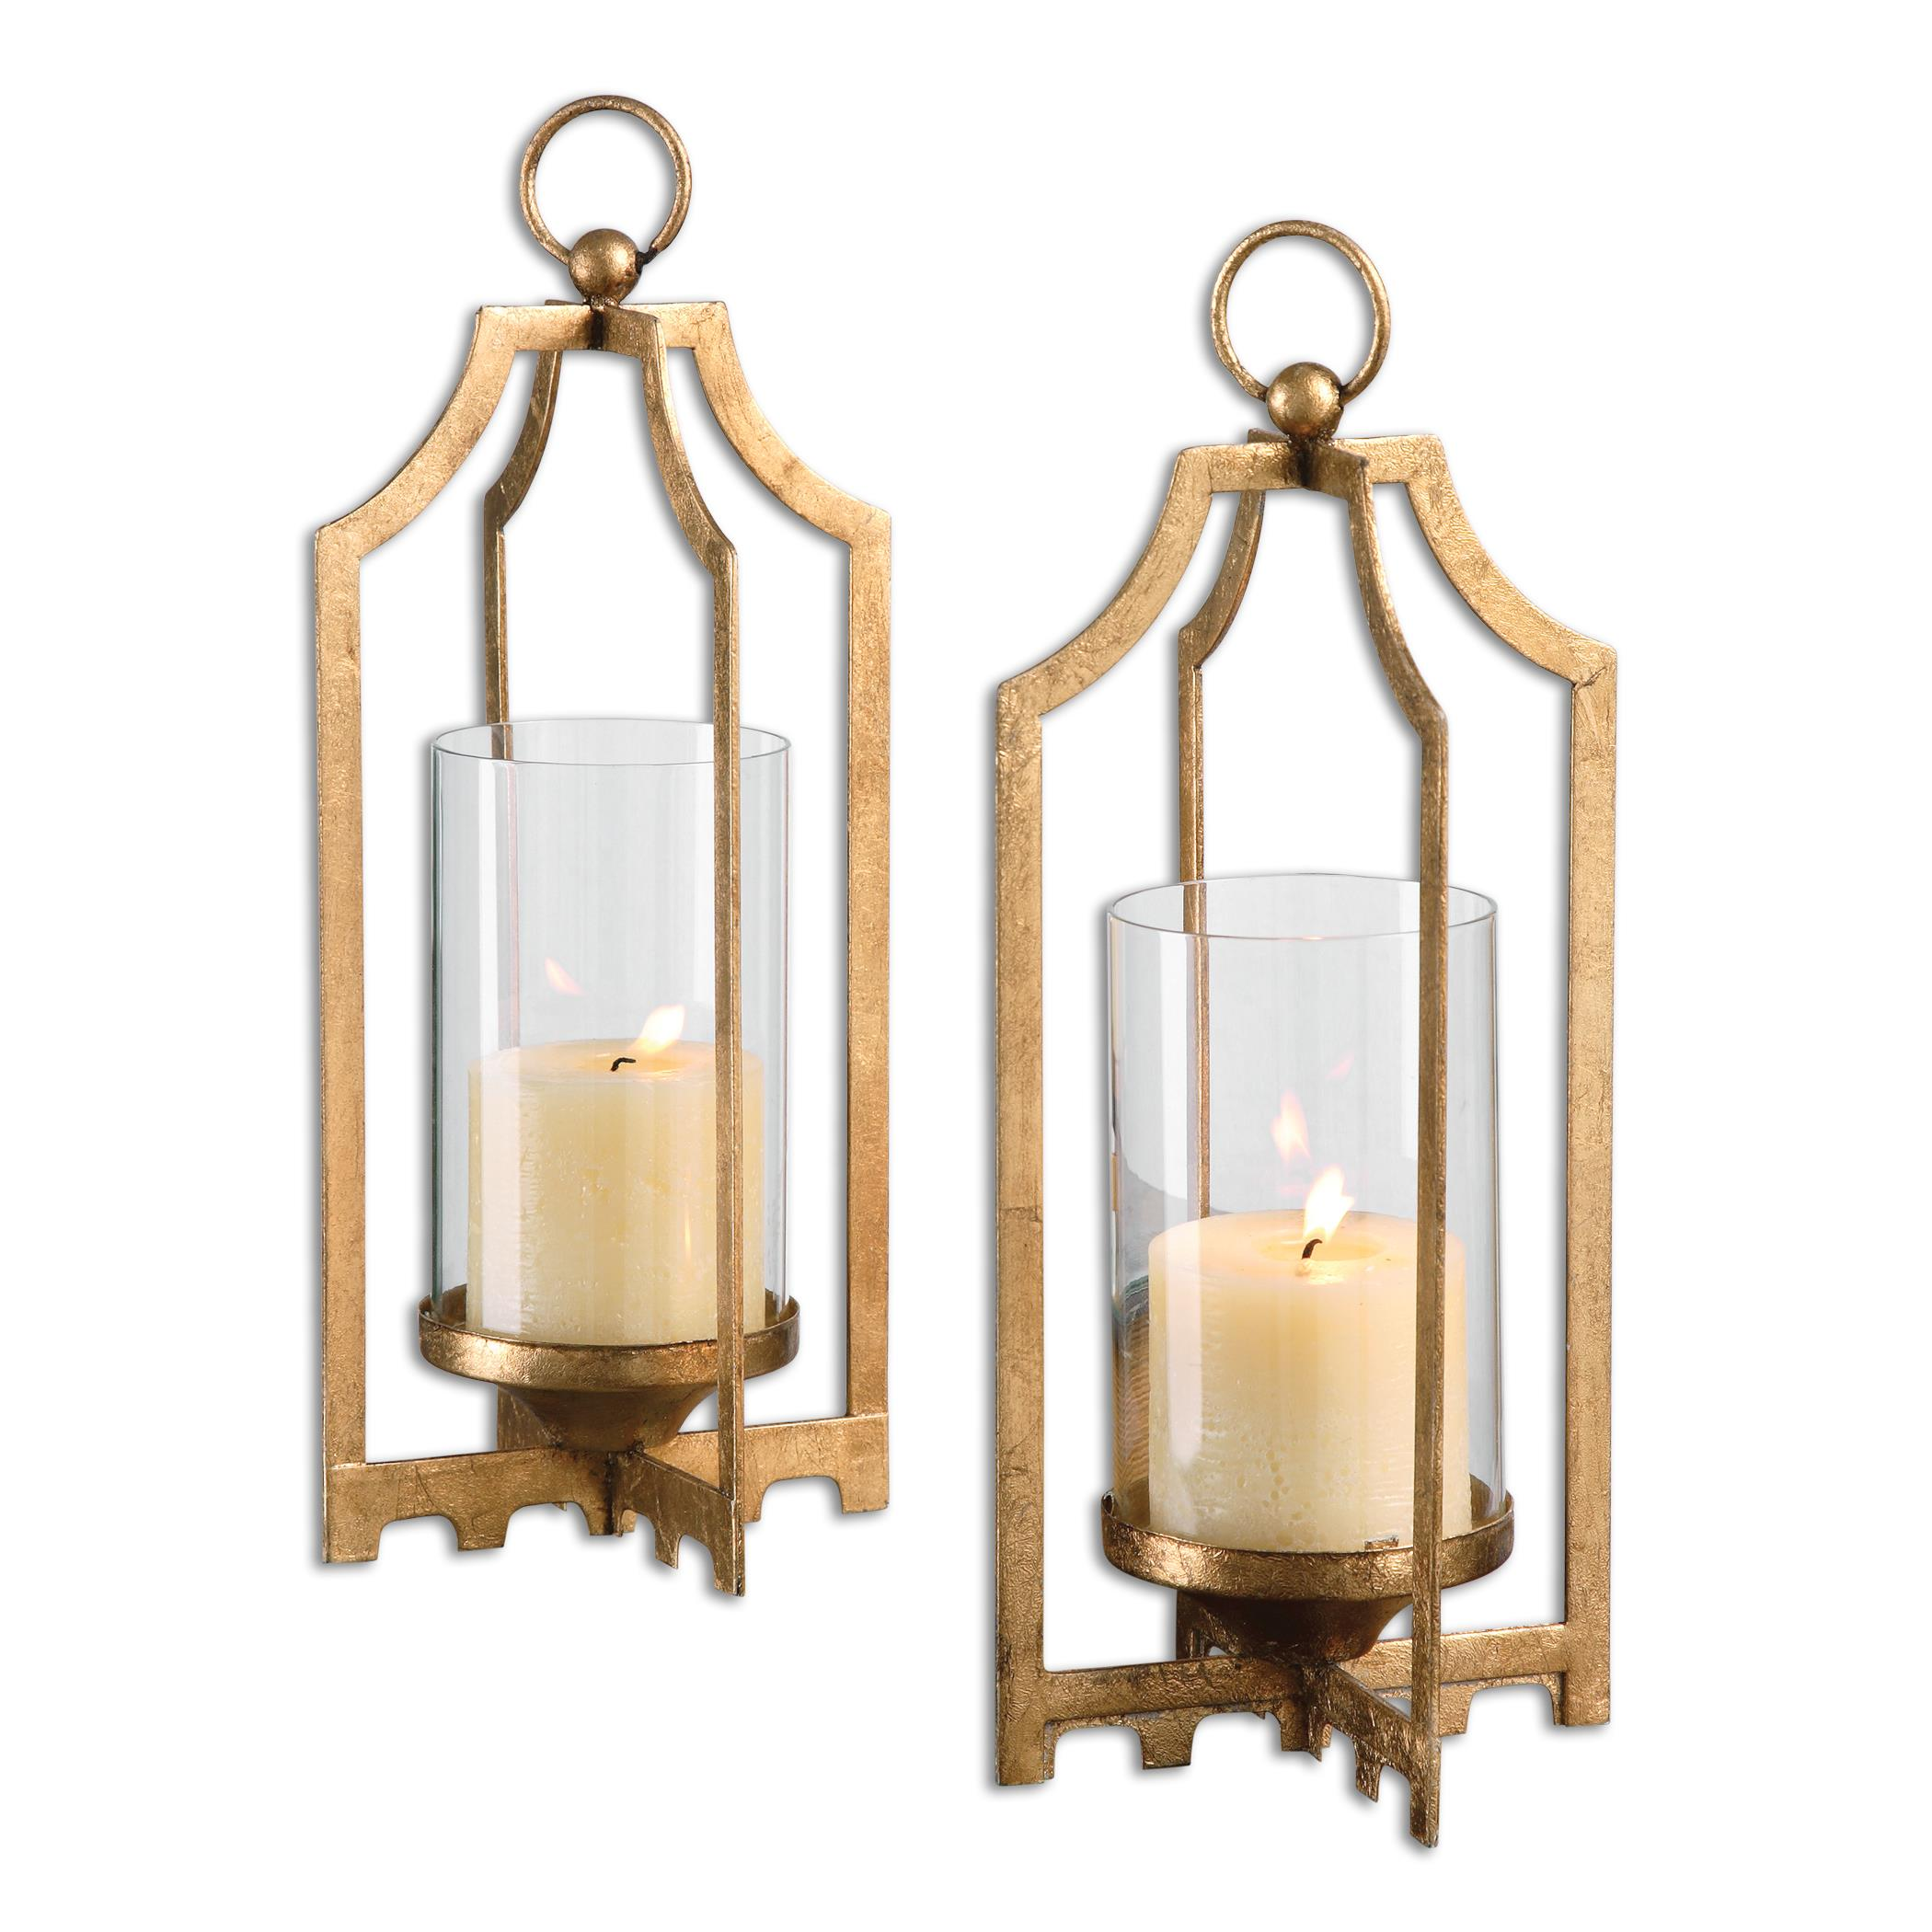 Uttermost Accessories Lucy Gold Candleholders S/2 - Item Number: 19957